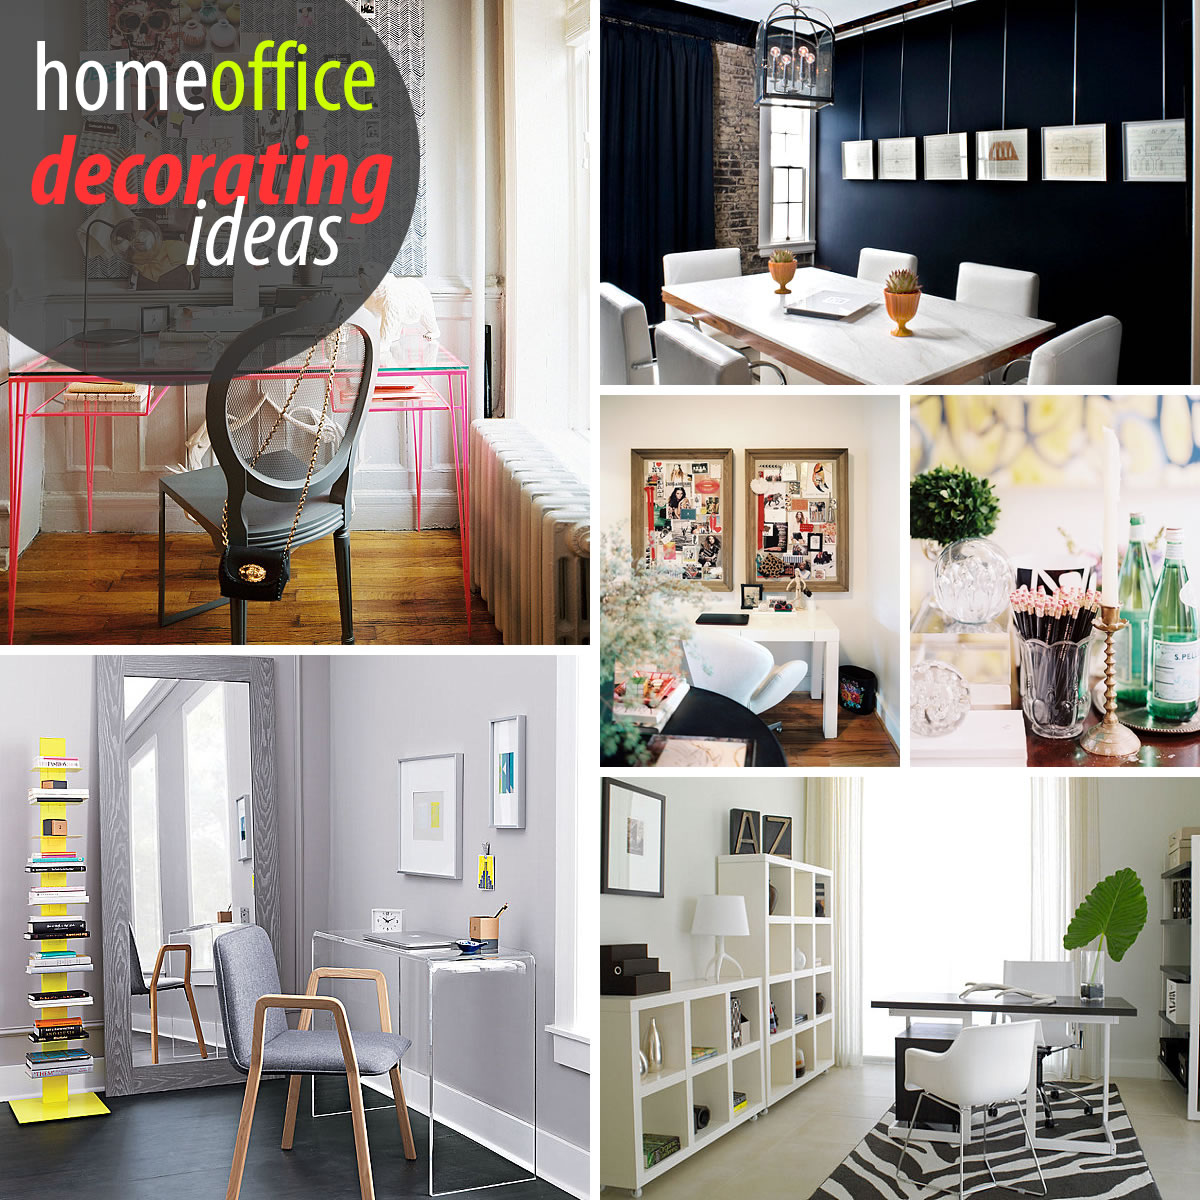 Home Design Ideas Pictures: Creative Home Office Decorating Ideas